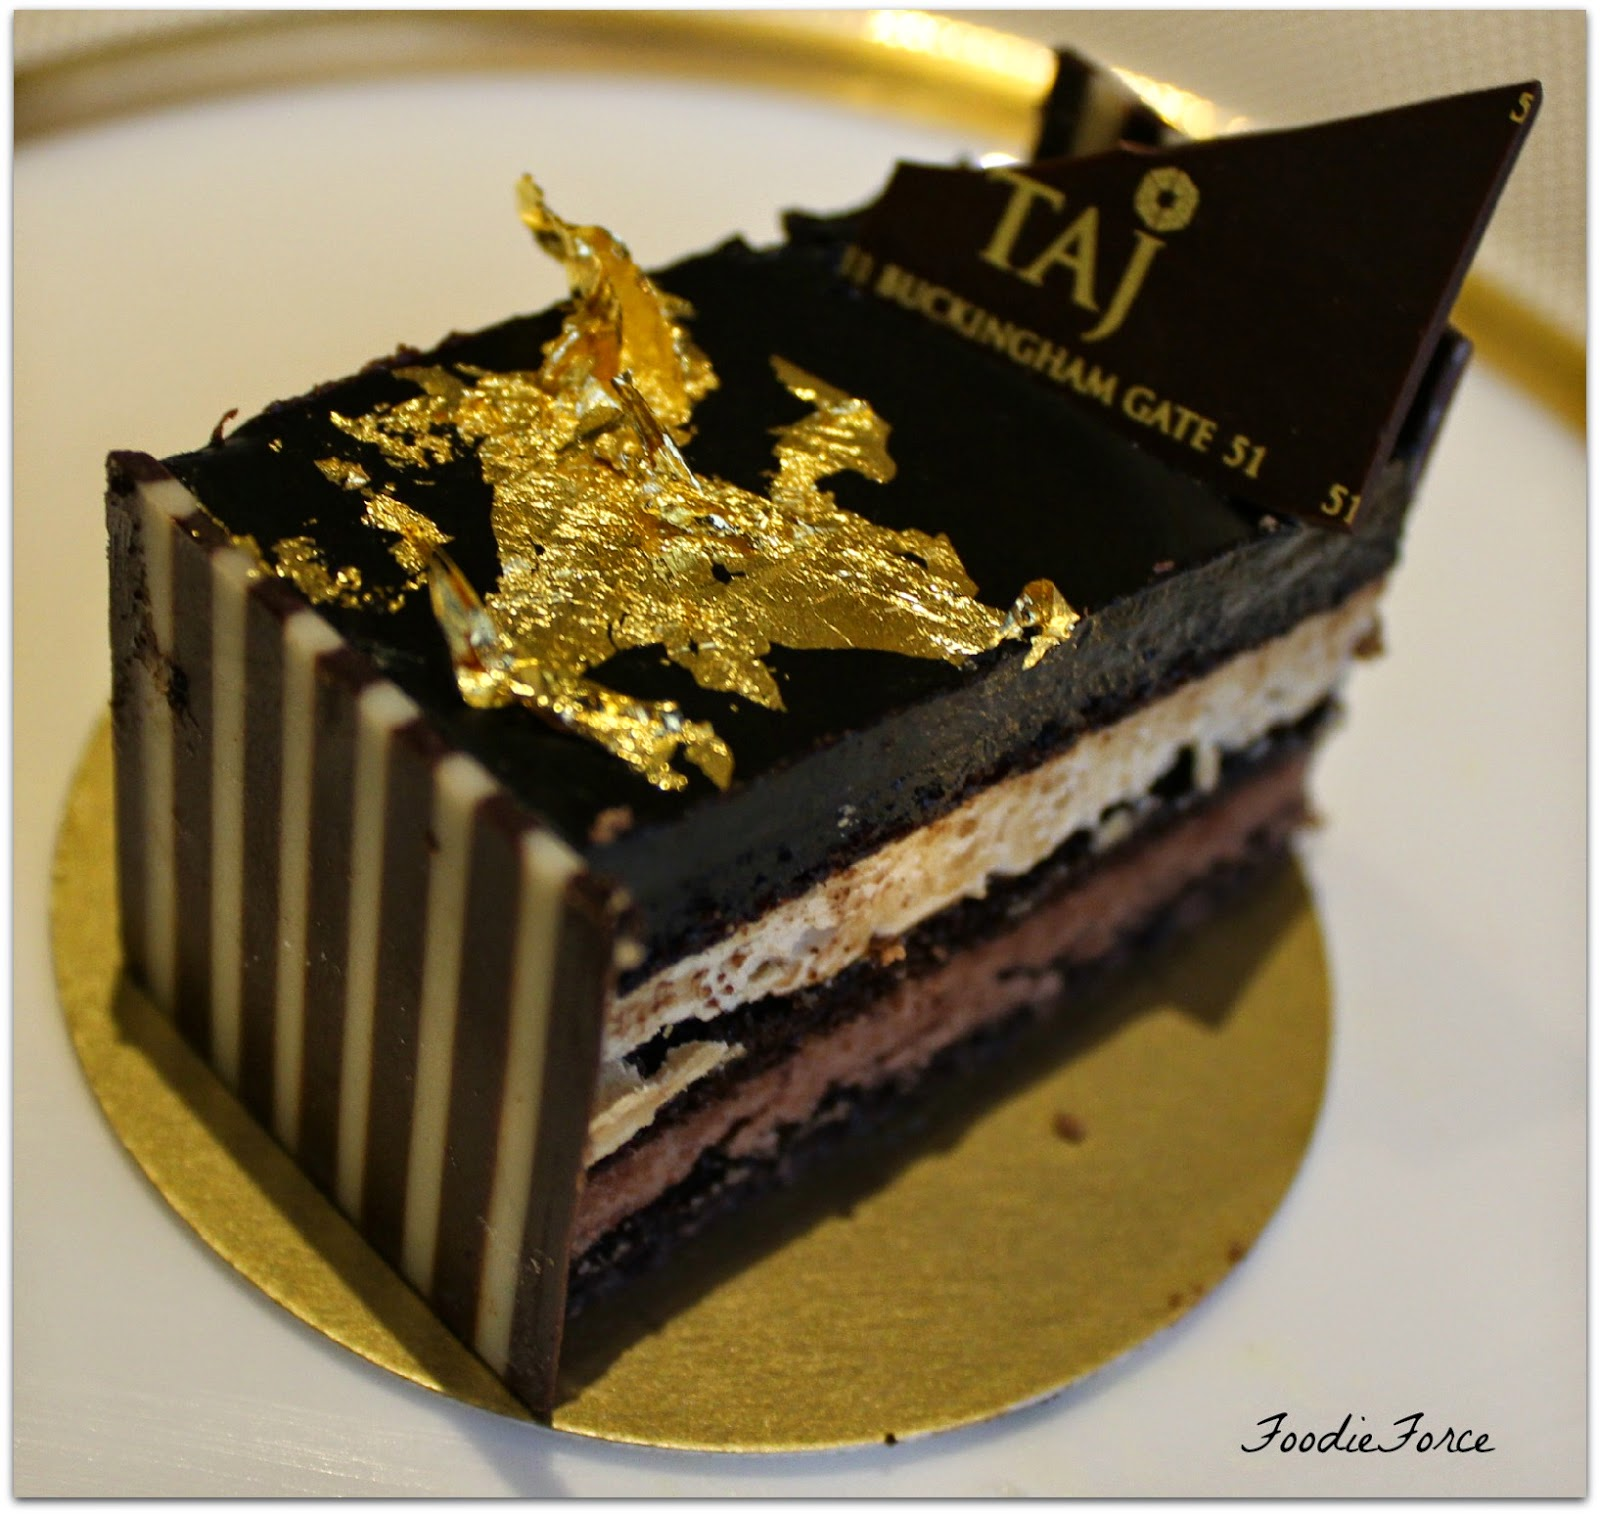 24 Karat Afternoon Tea